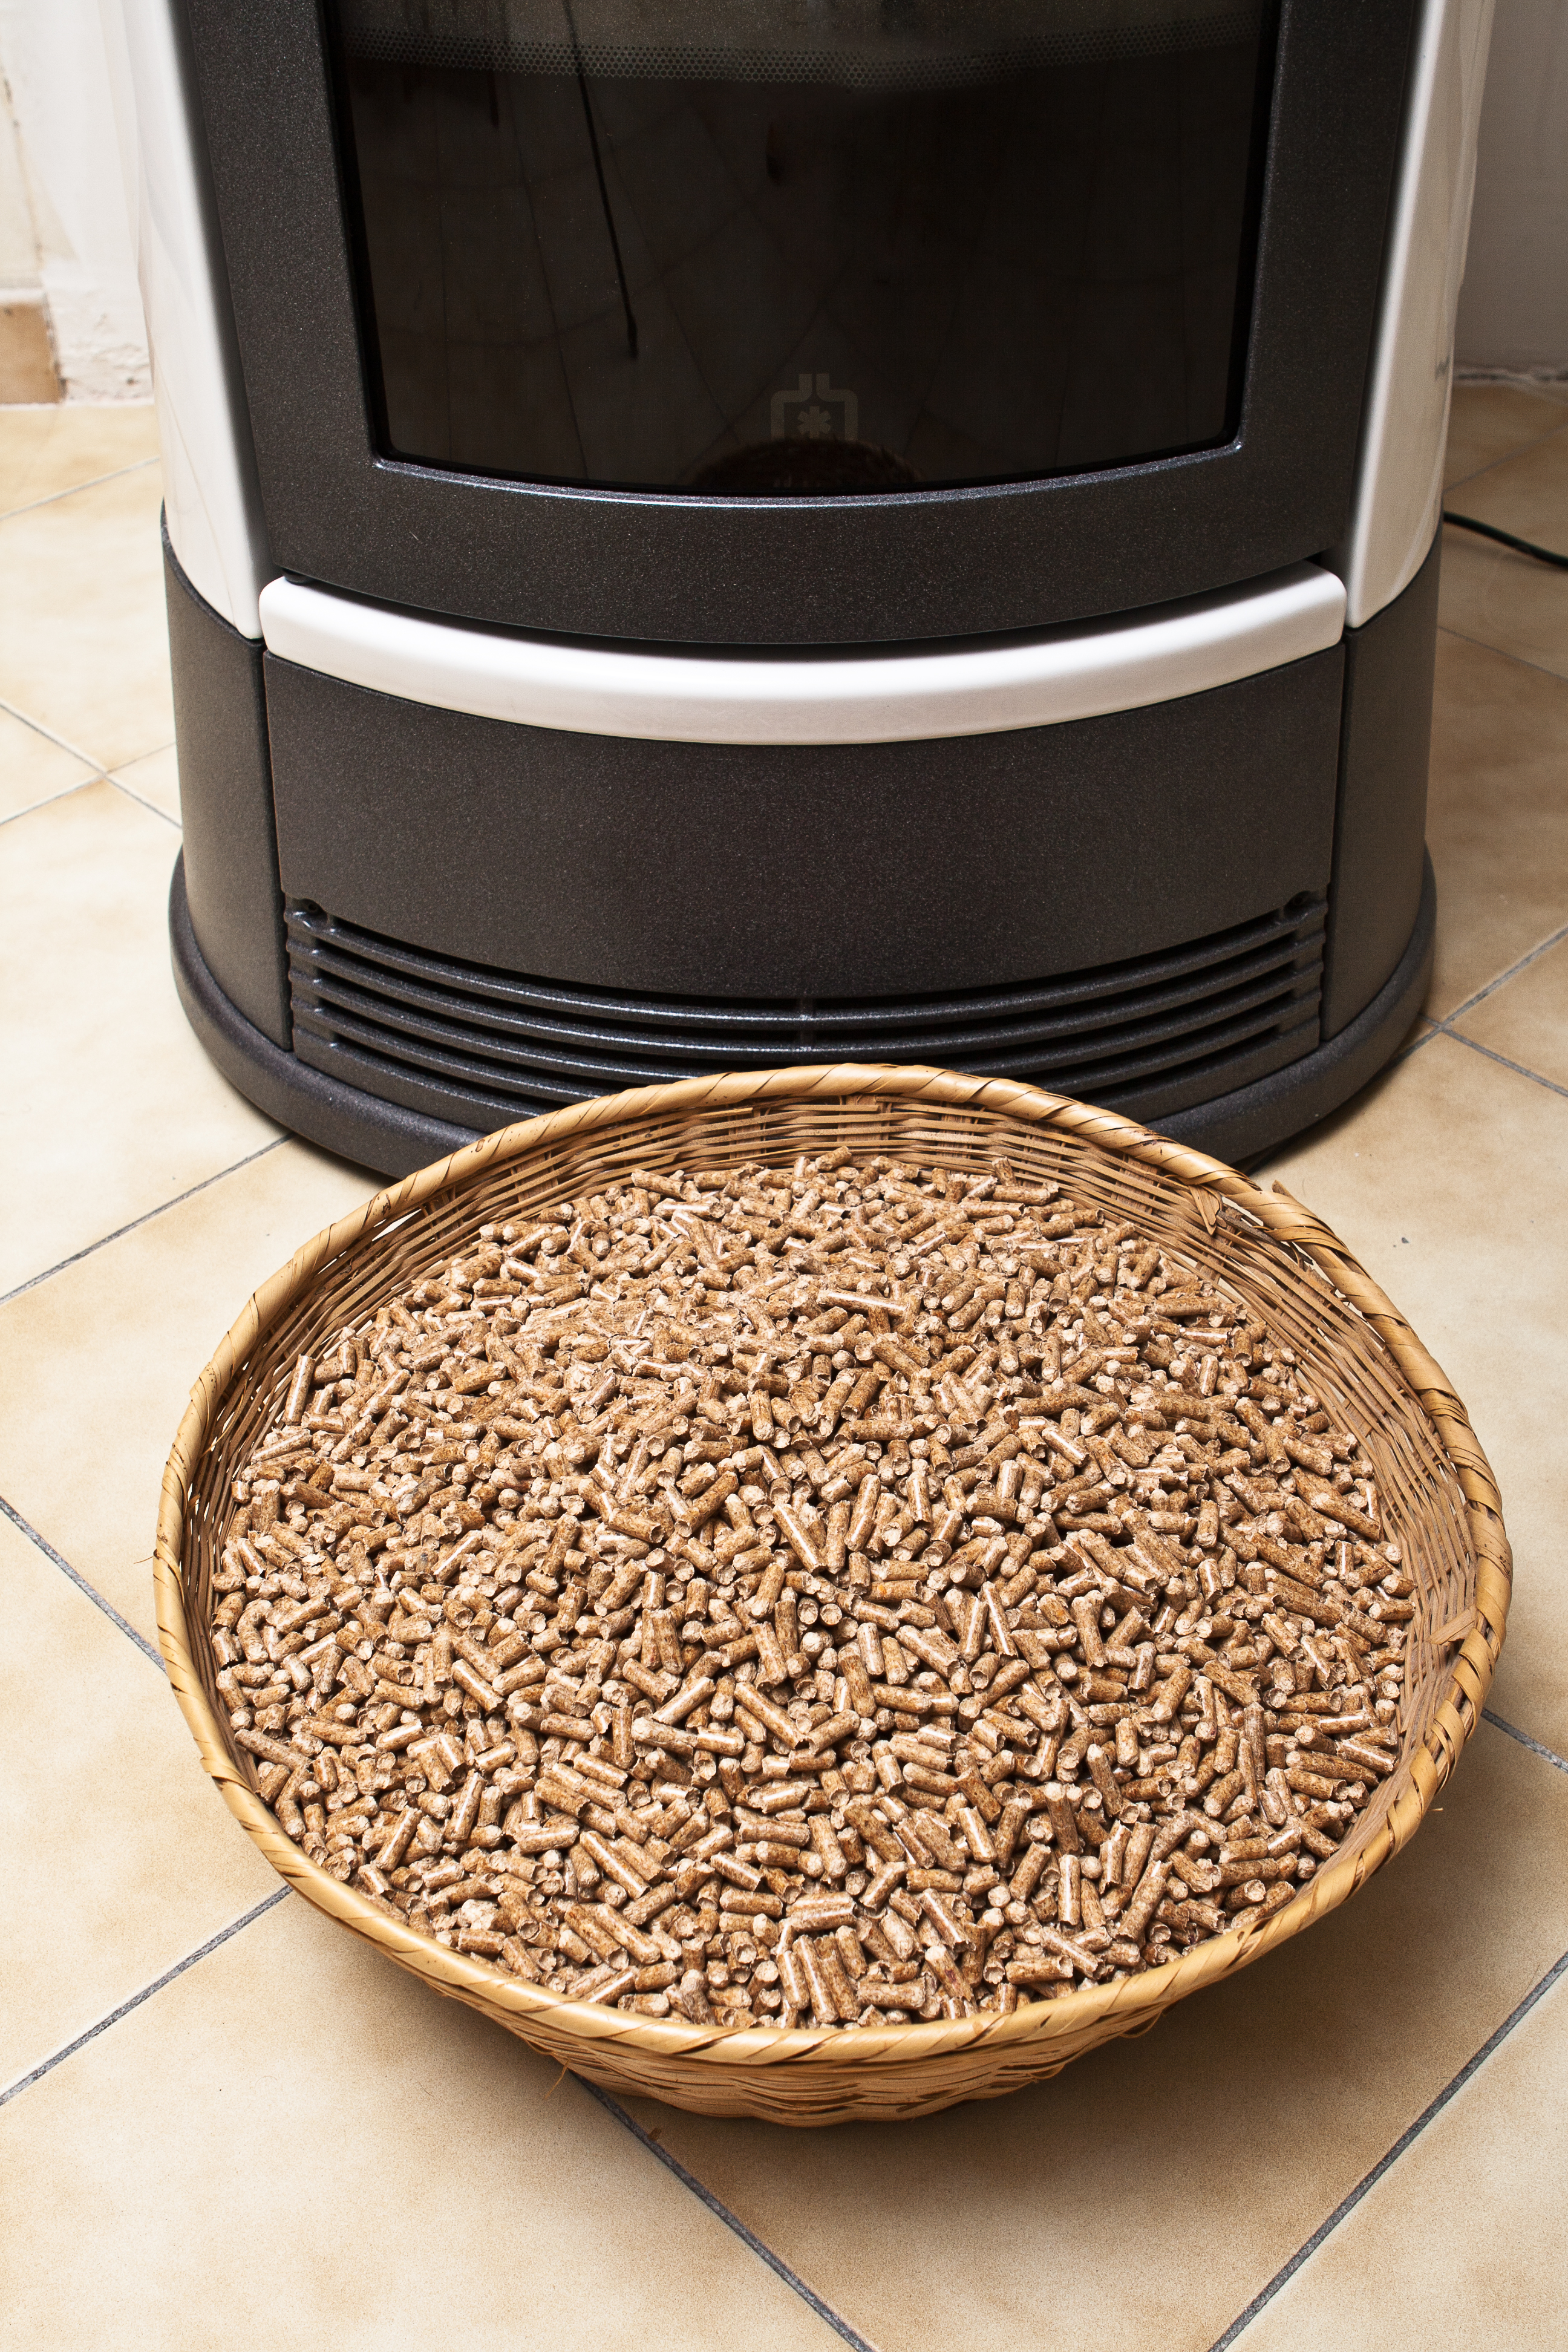 Save money with Maryland's Clean Burning Wood Stove Grant Program